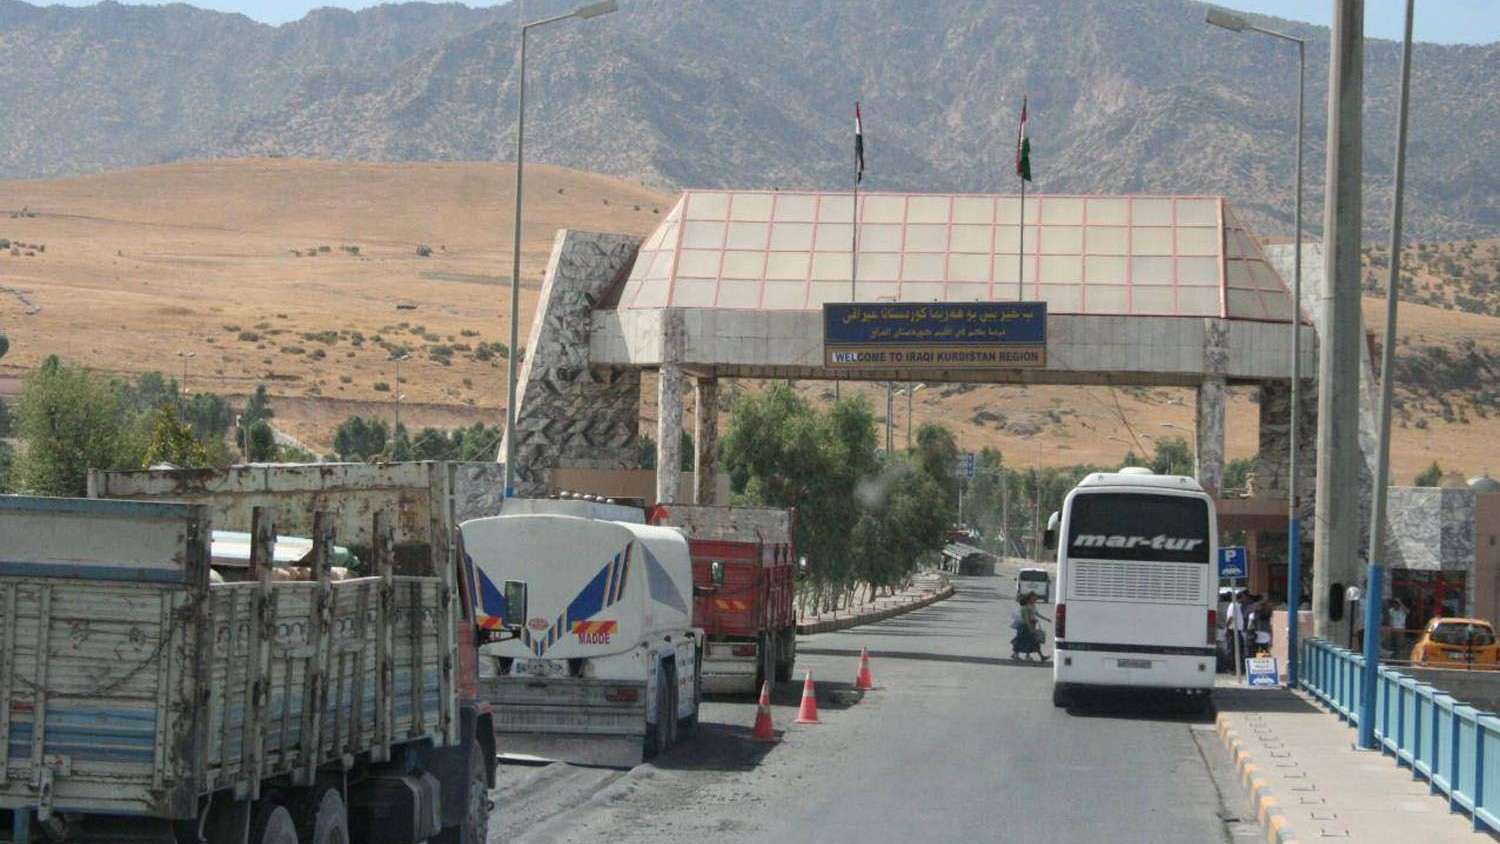 Kurdistan Region: The commercial exchange process continues at the border crossings